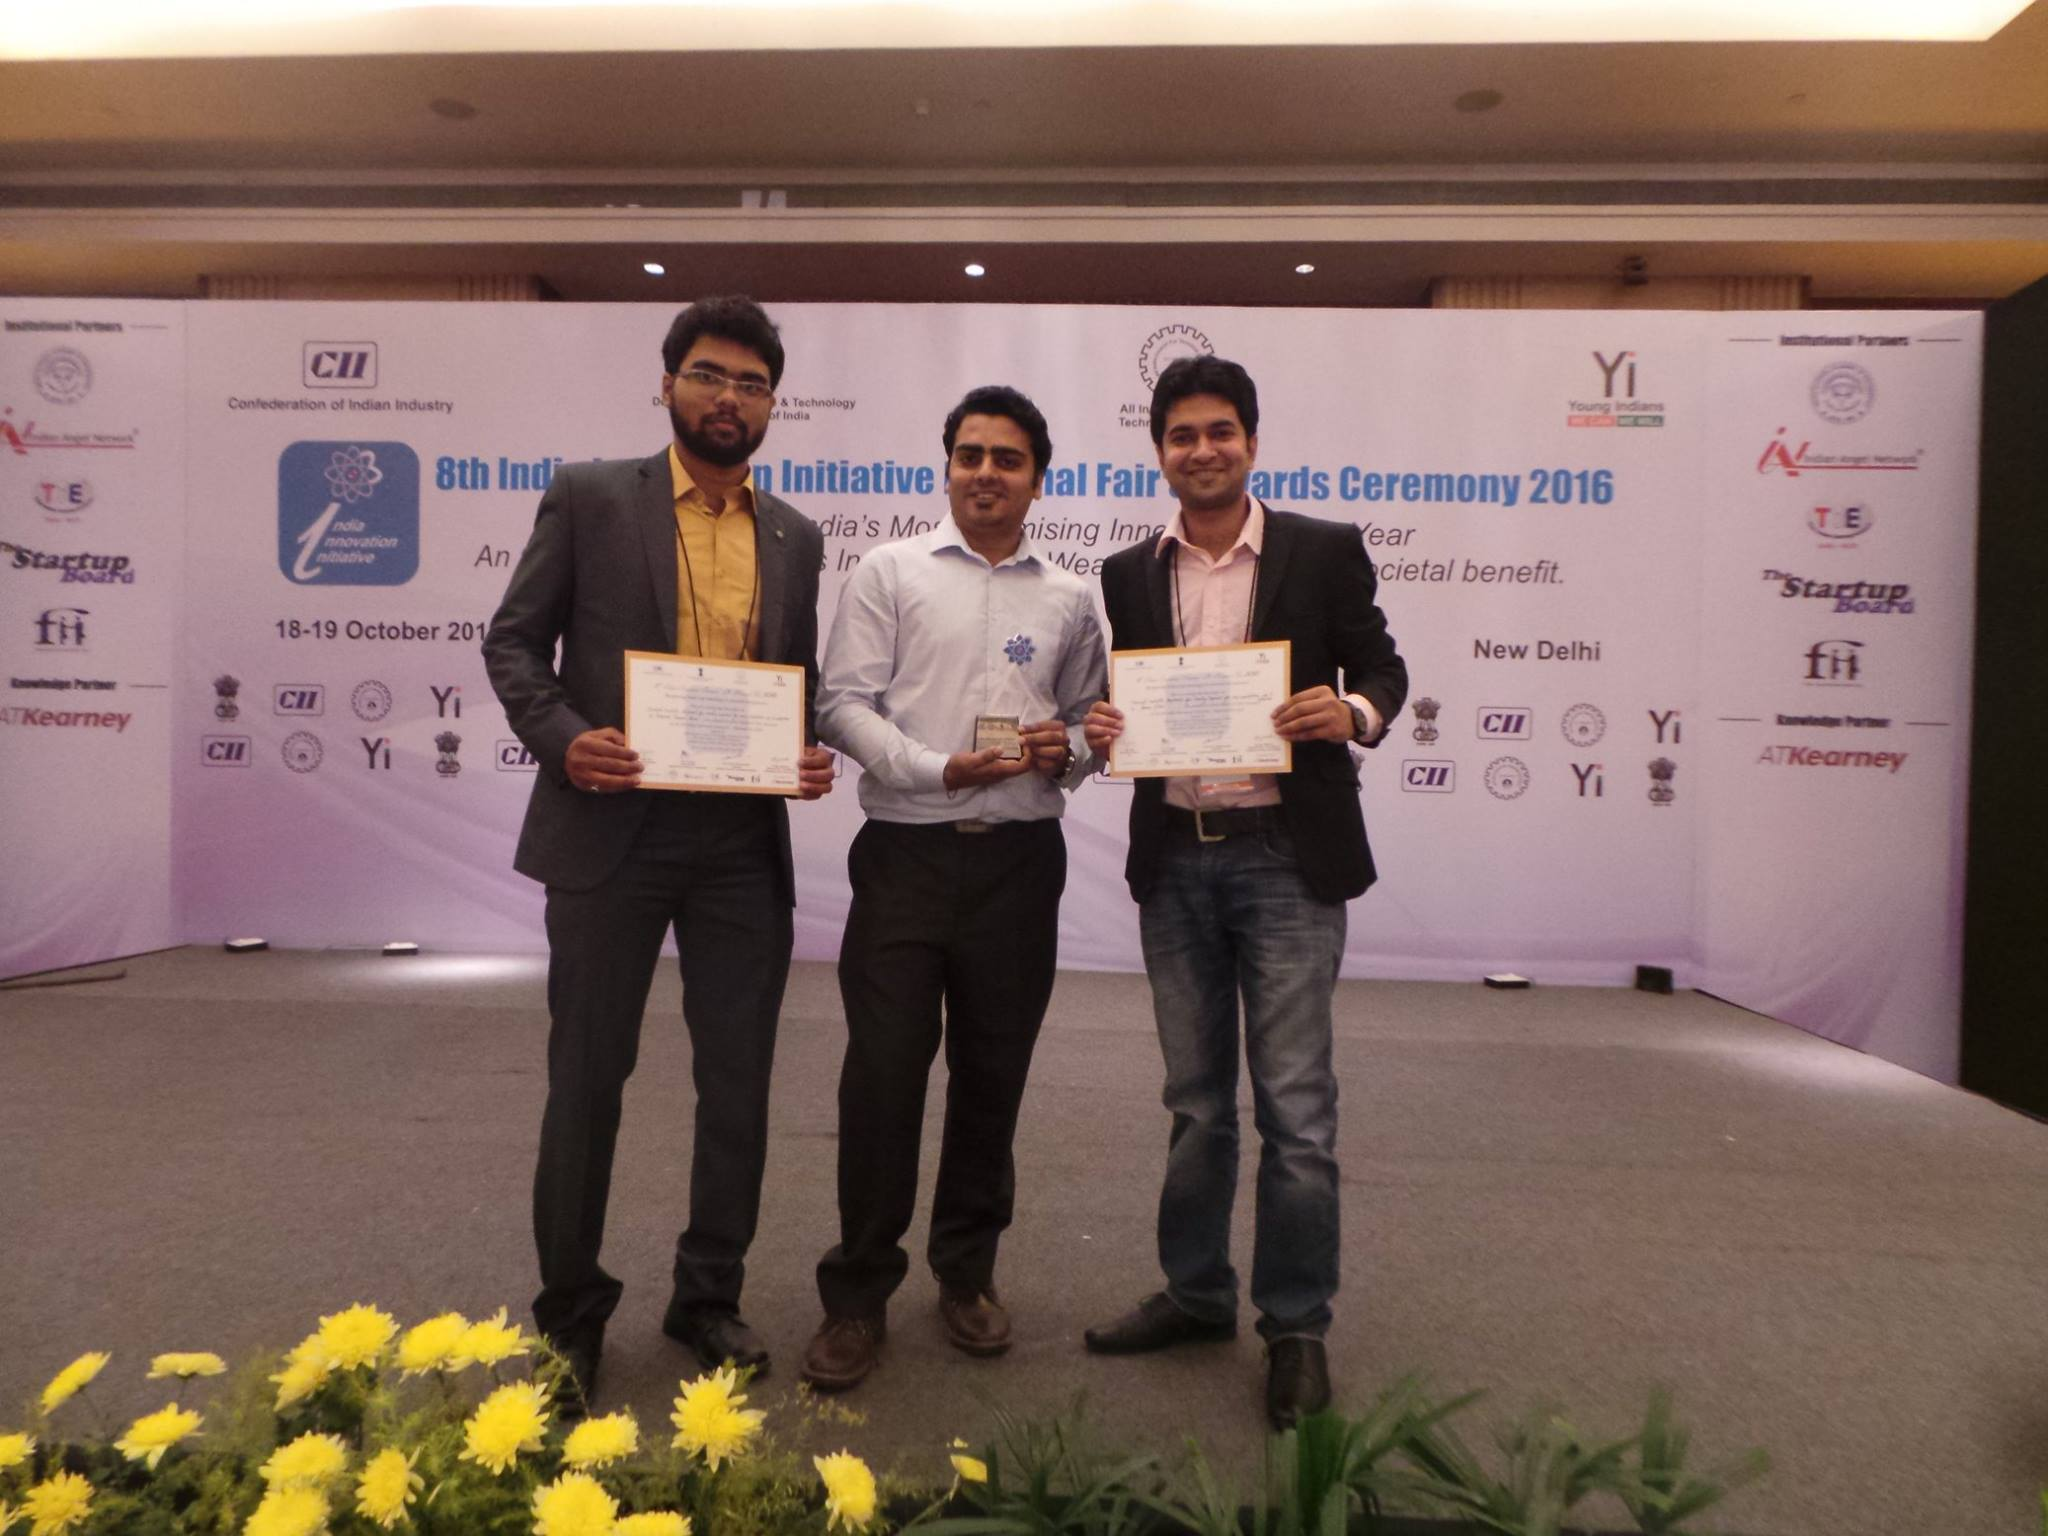 from Left to Right, Shaswat, Vaibhav, Gaurav with Posing for Photograph on the stage with Certificates and Award in hand